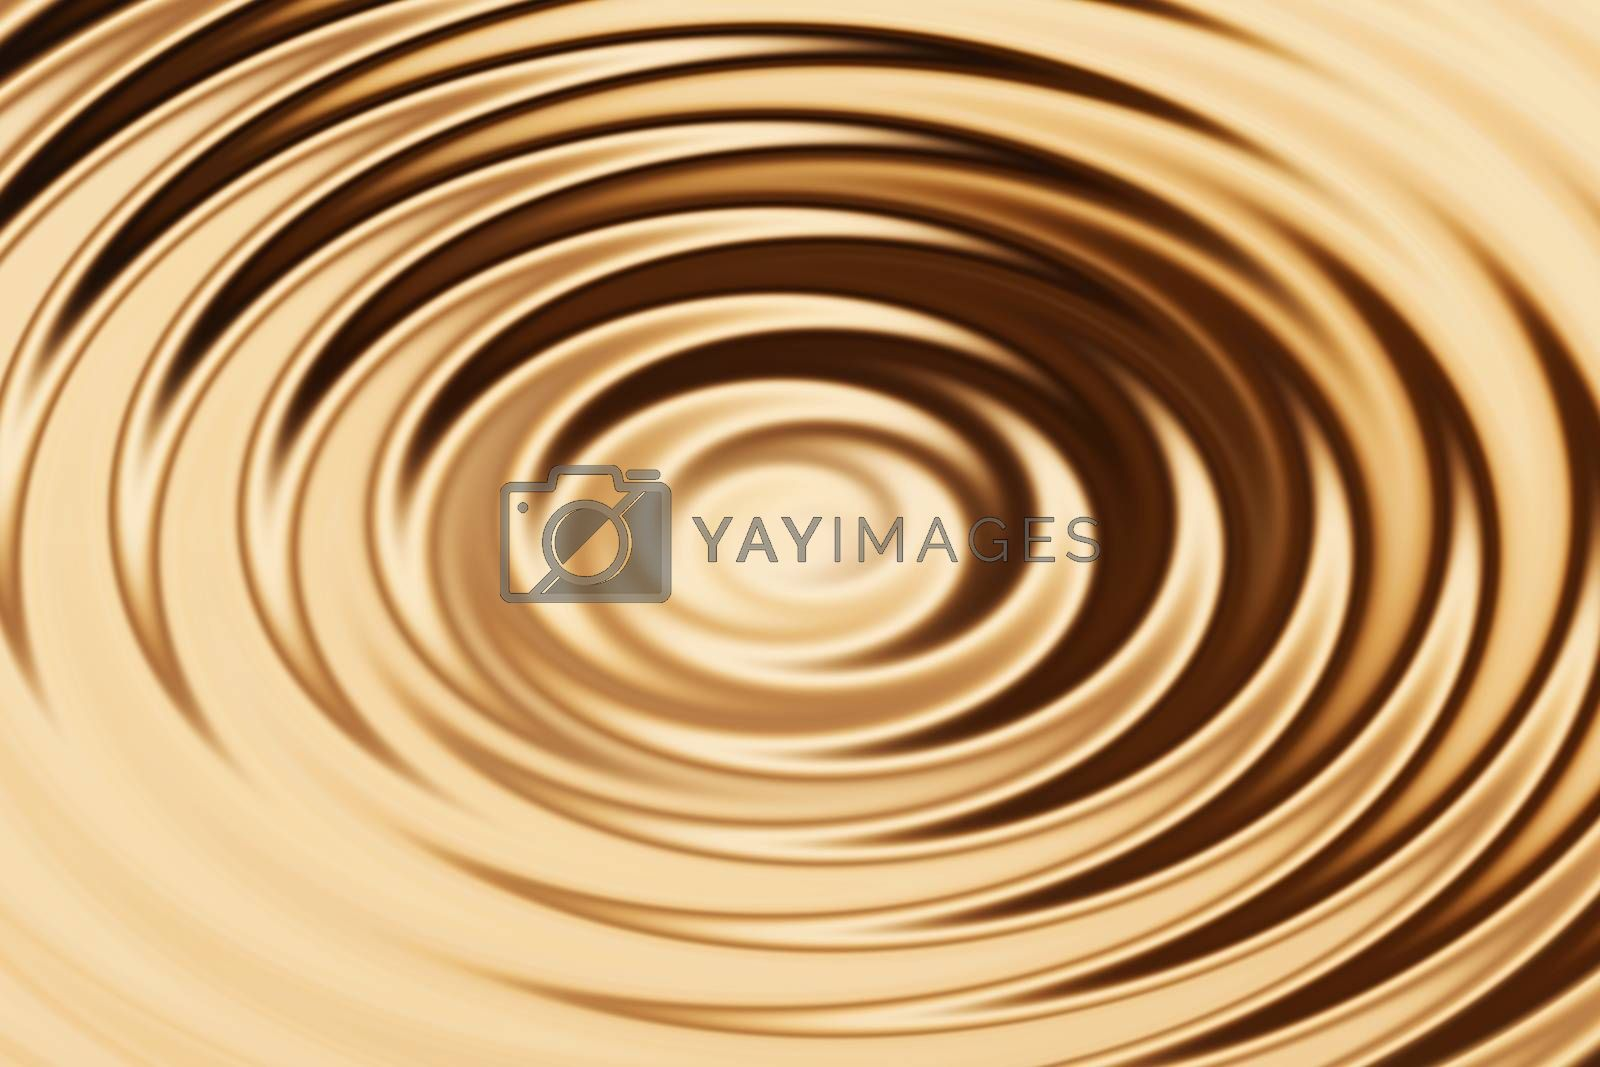 Royalty free image of Blurred bronze water ring with liquid ripple, abstract background texture by mouu007